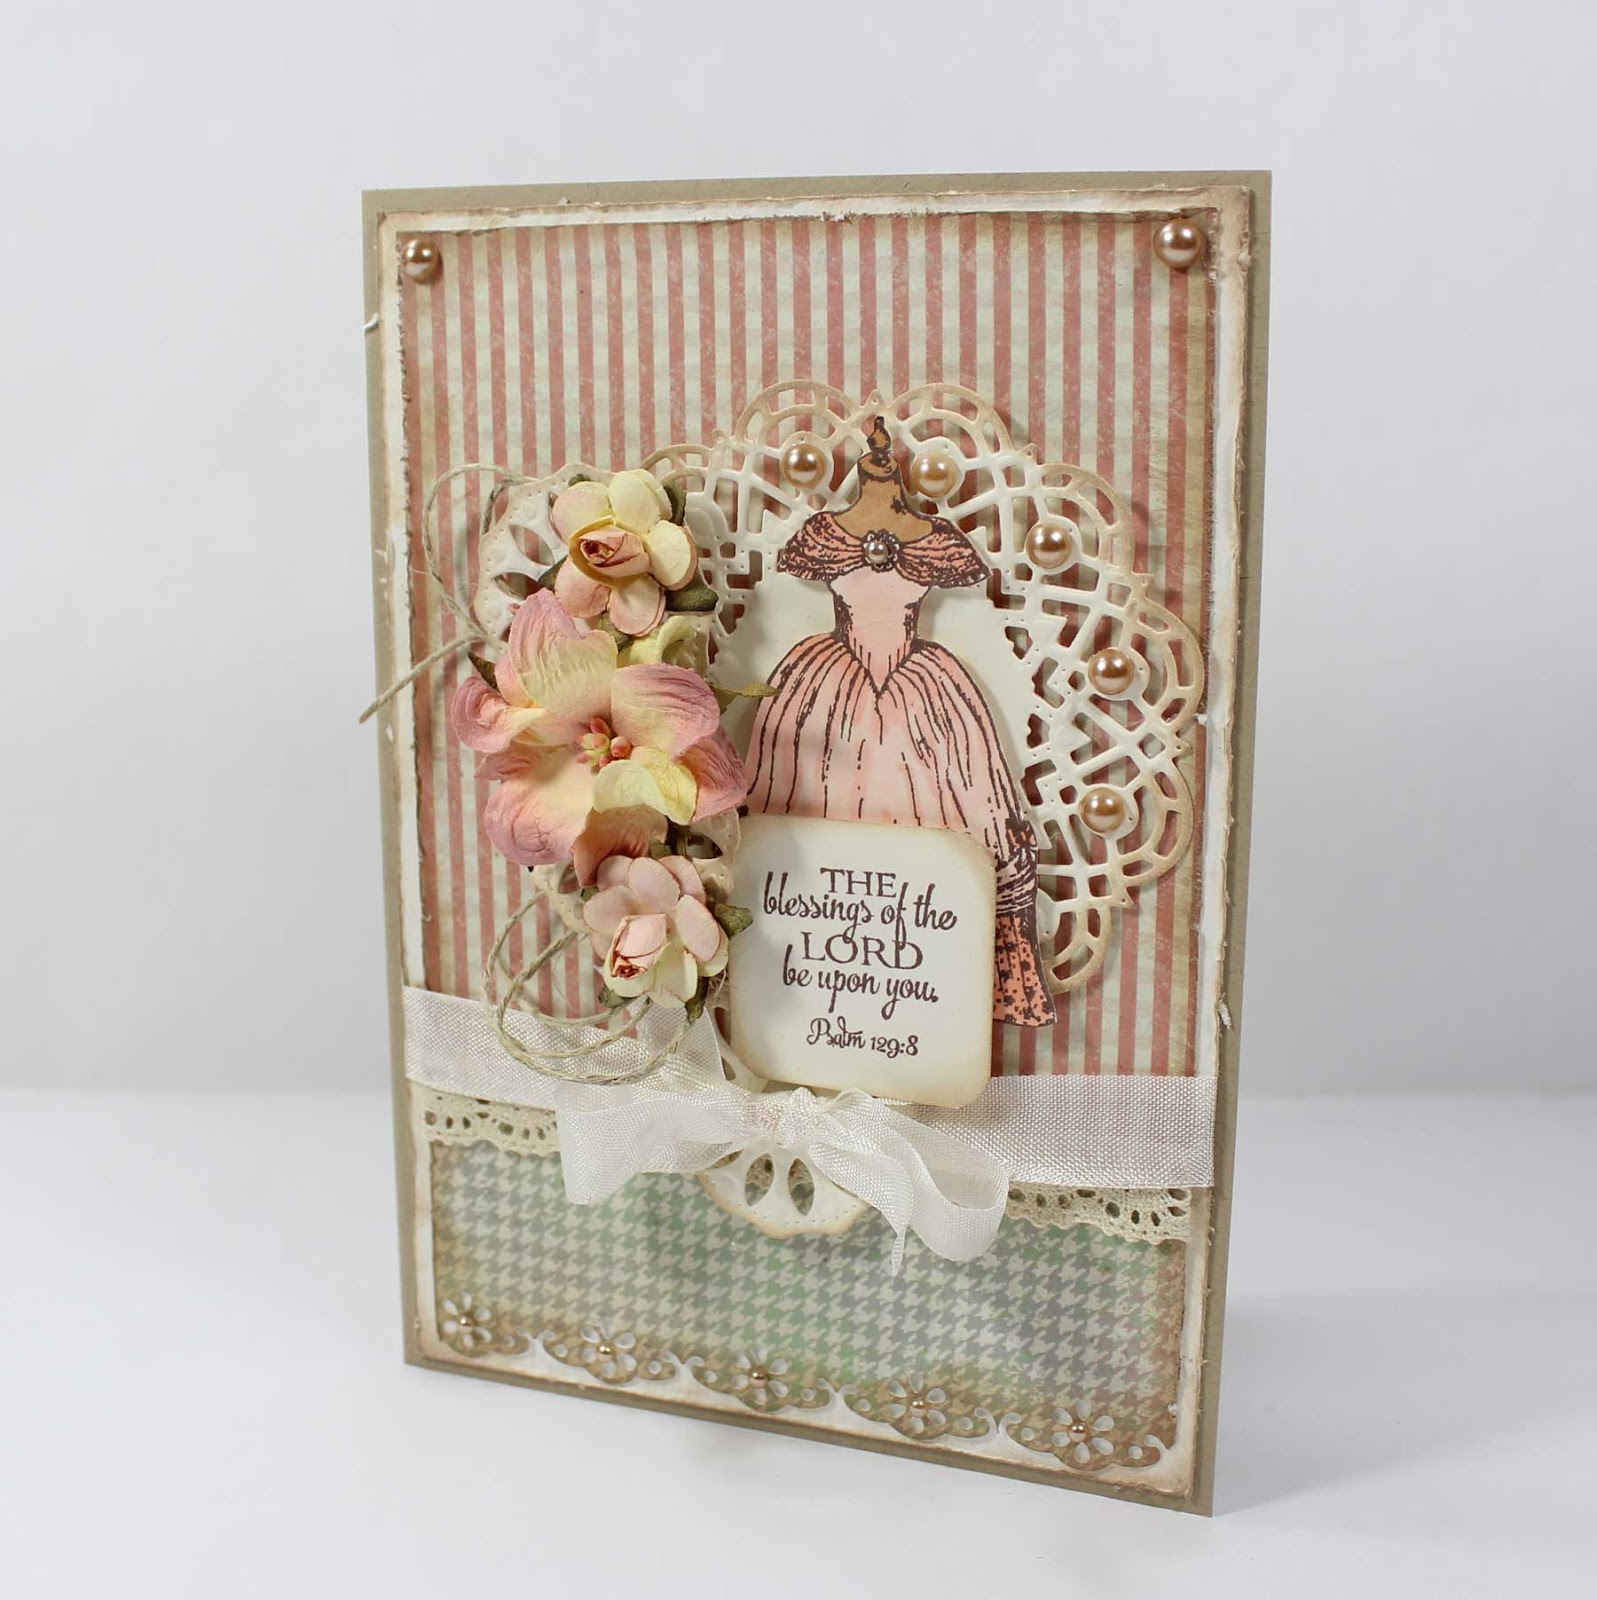 Stamps - Our Daily Bread Designs Victoria, Doily Blessings, ODBD Soulful Stitches Paper Collection, ODBD Custom Doily Dies.